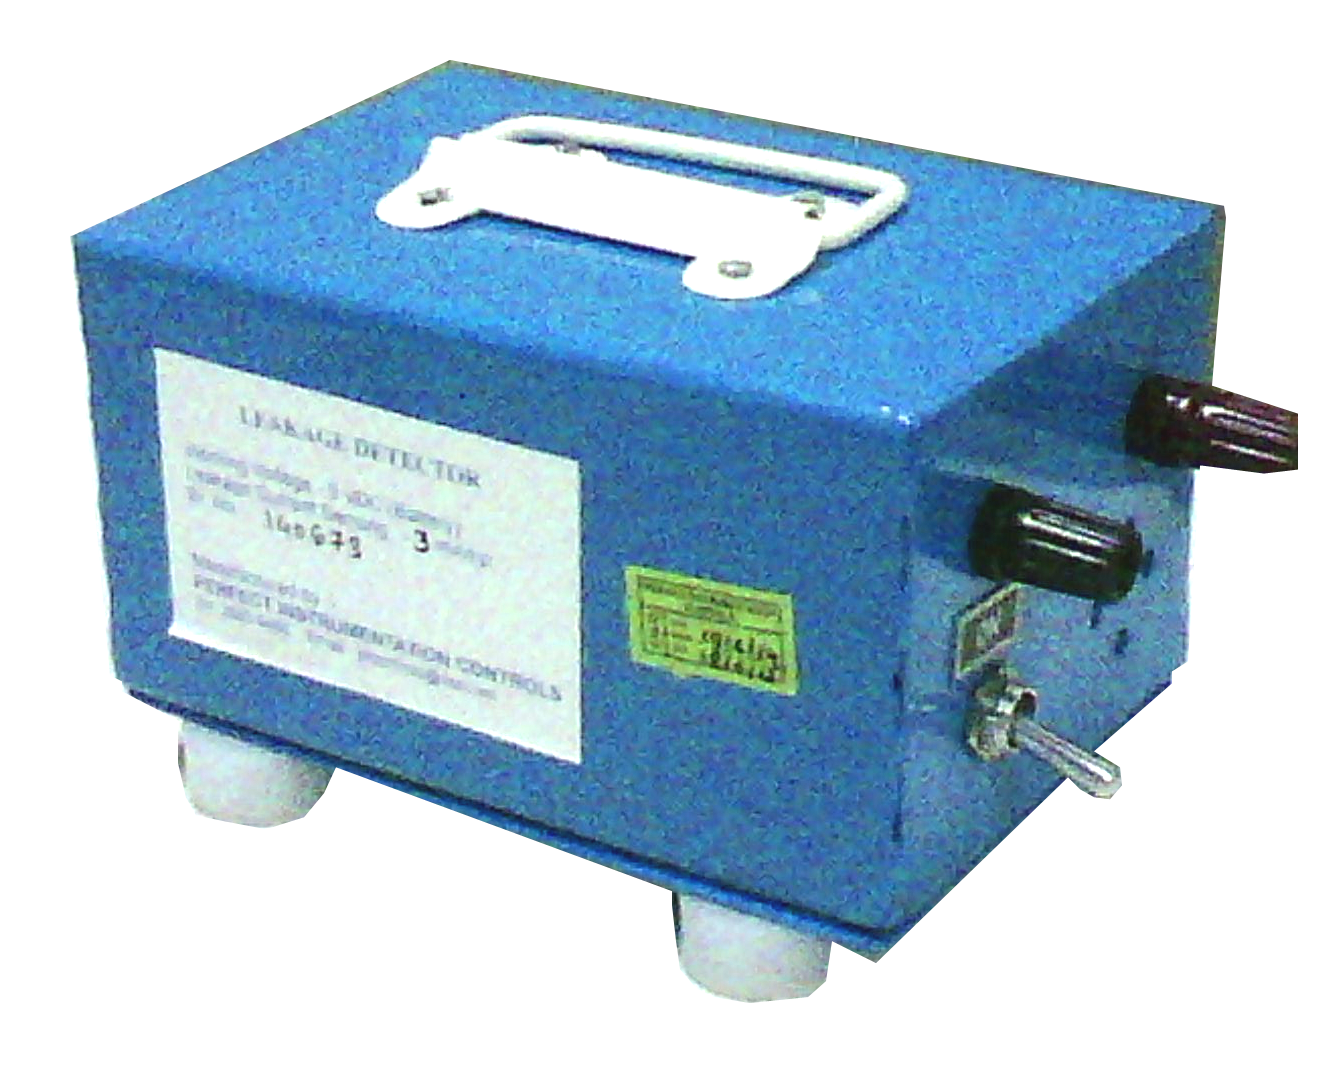 Manufacture of Leakage Detector